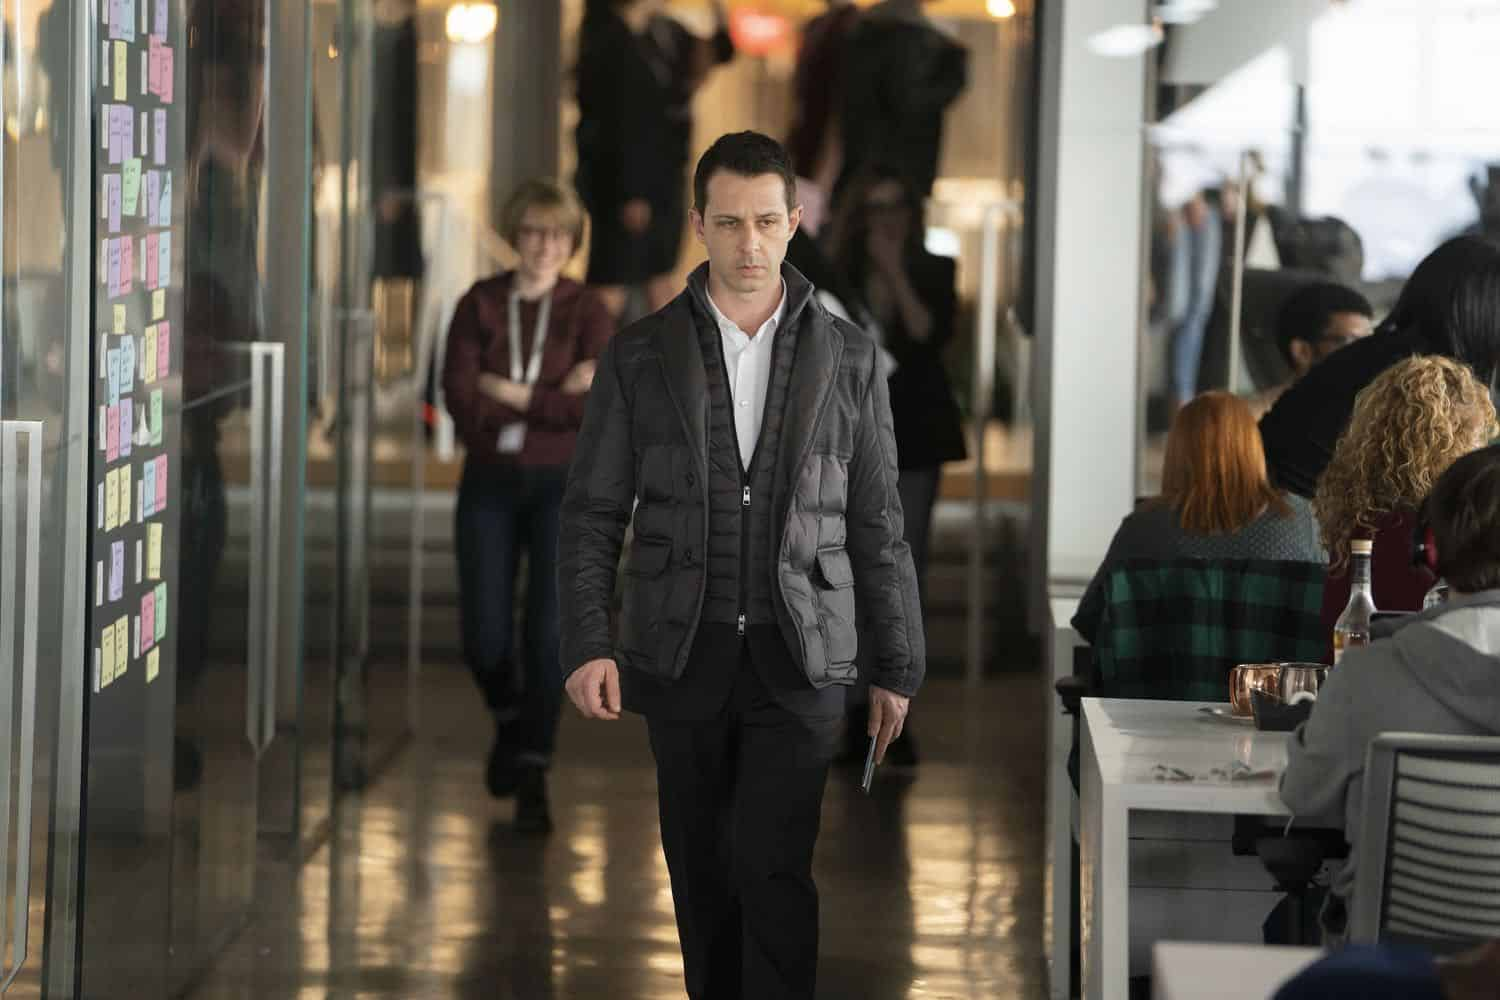 Succession Season 2, episode 2 (debuts 8/18/19): Jeremy Strong. photo: Peter Kramer/HBO